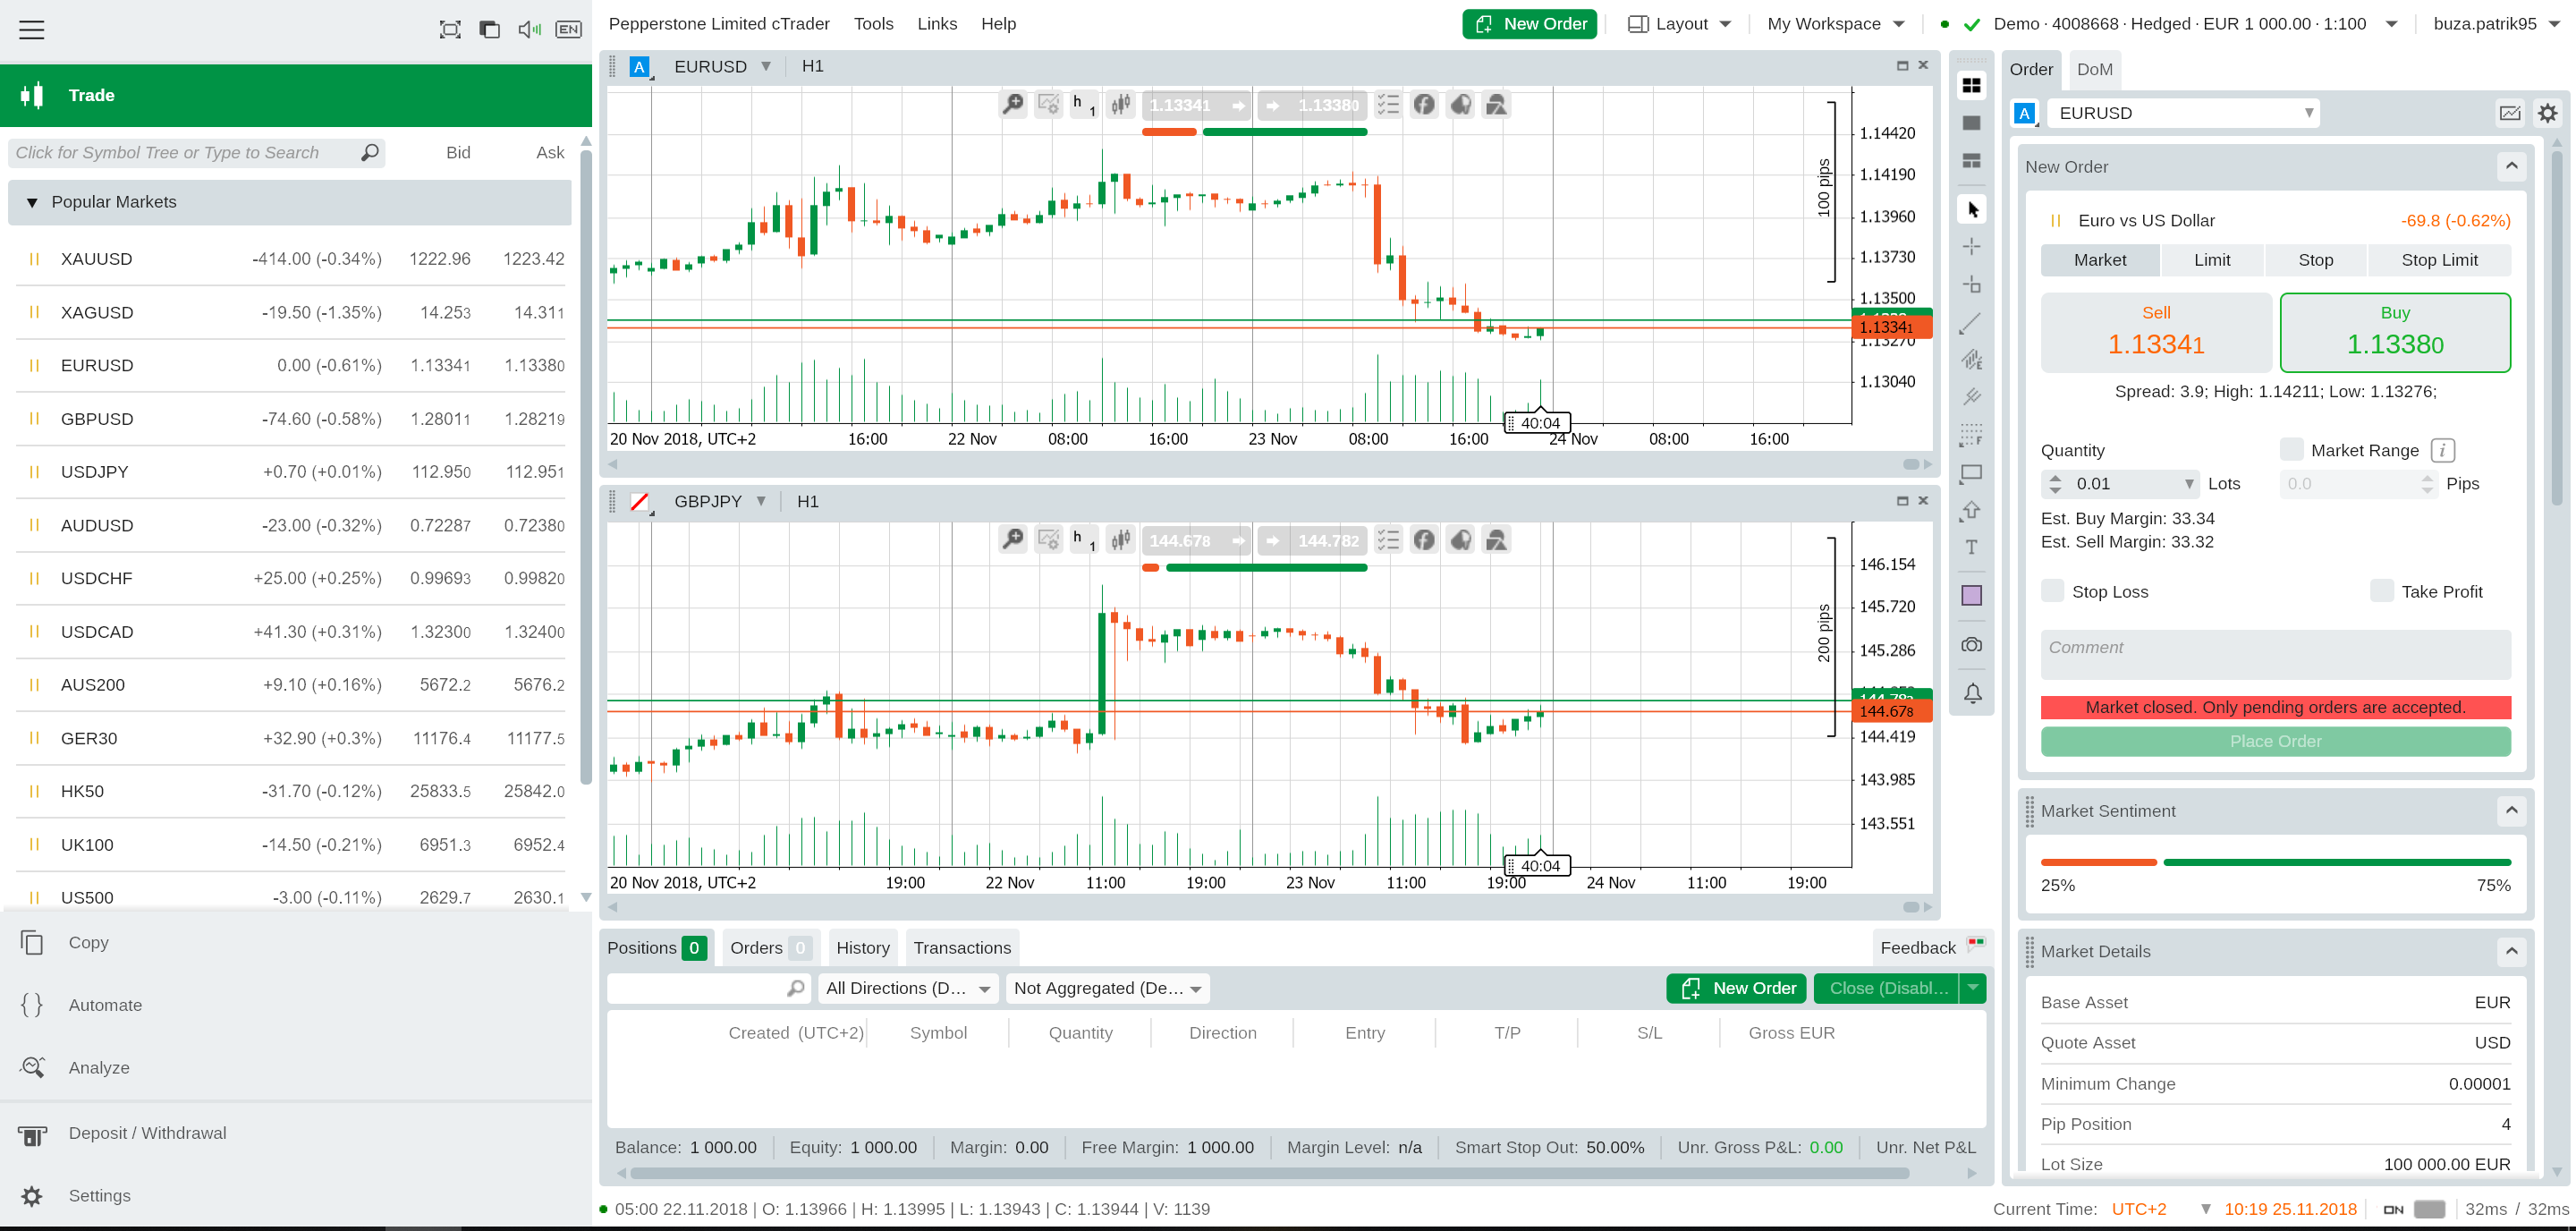 Forex trading platform reviews